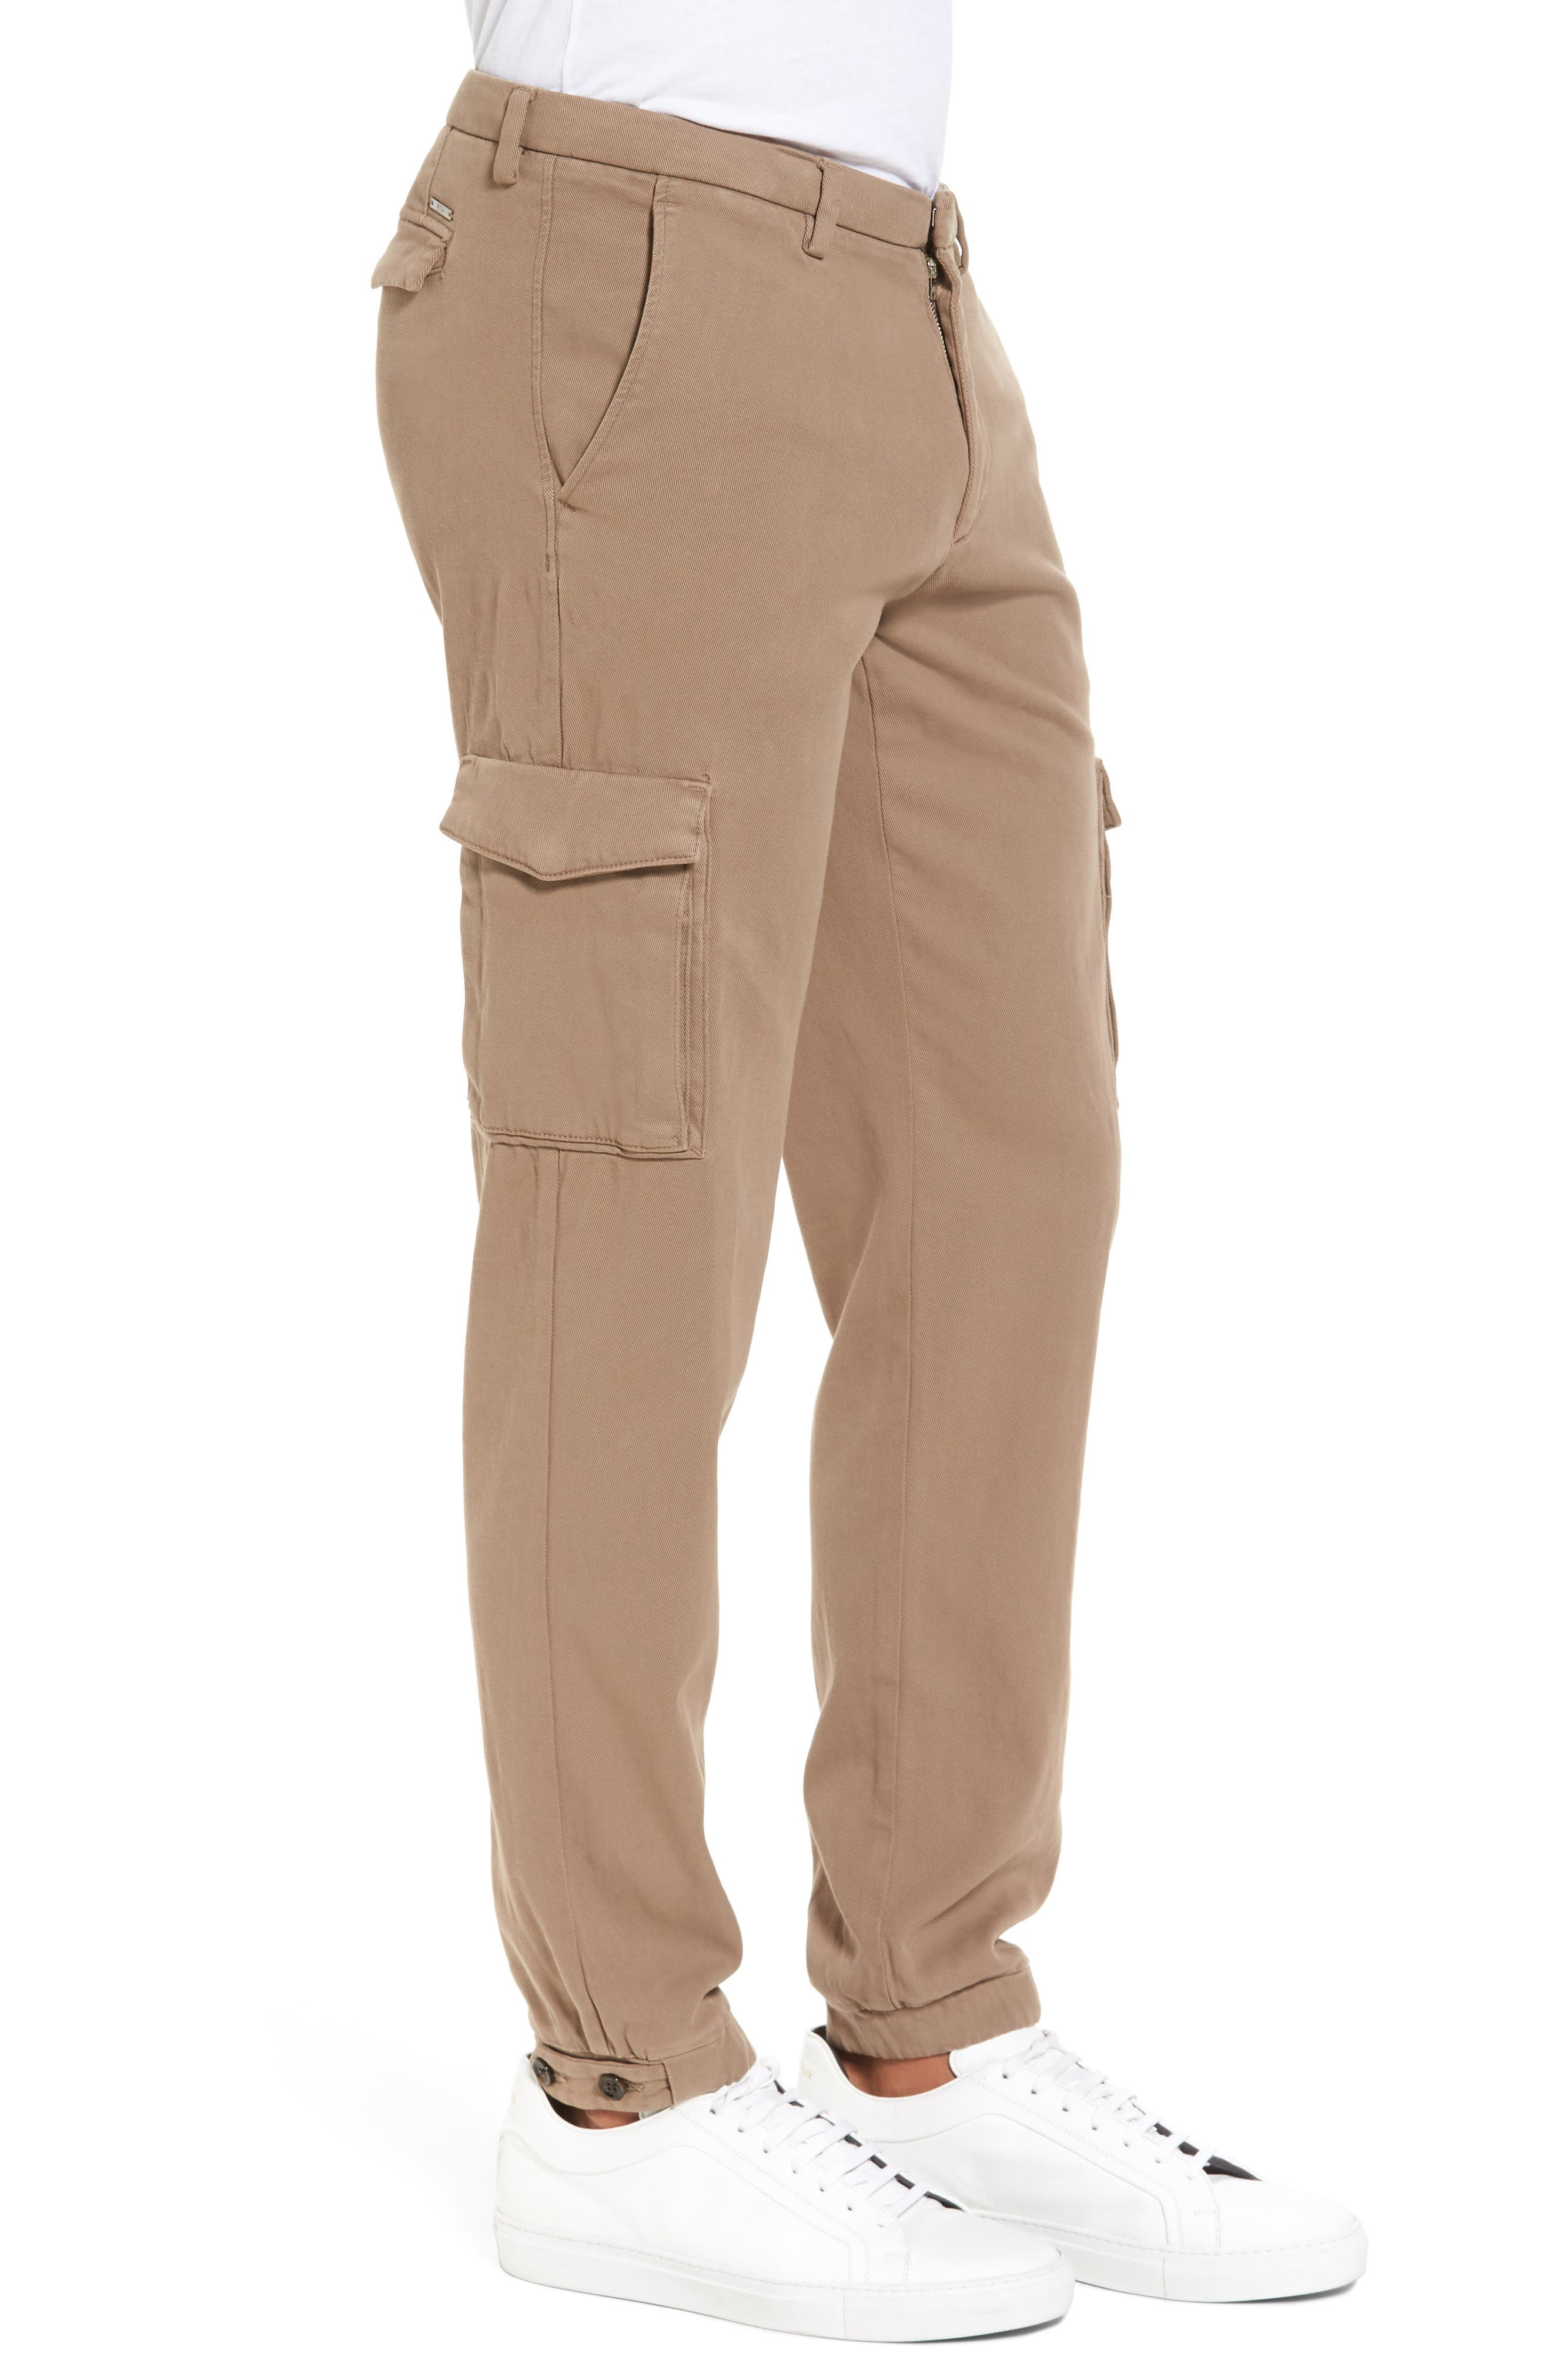 Kaigo Slim Jogger Pants,                             Alternate thumbnail 3, color,                             Khaki